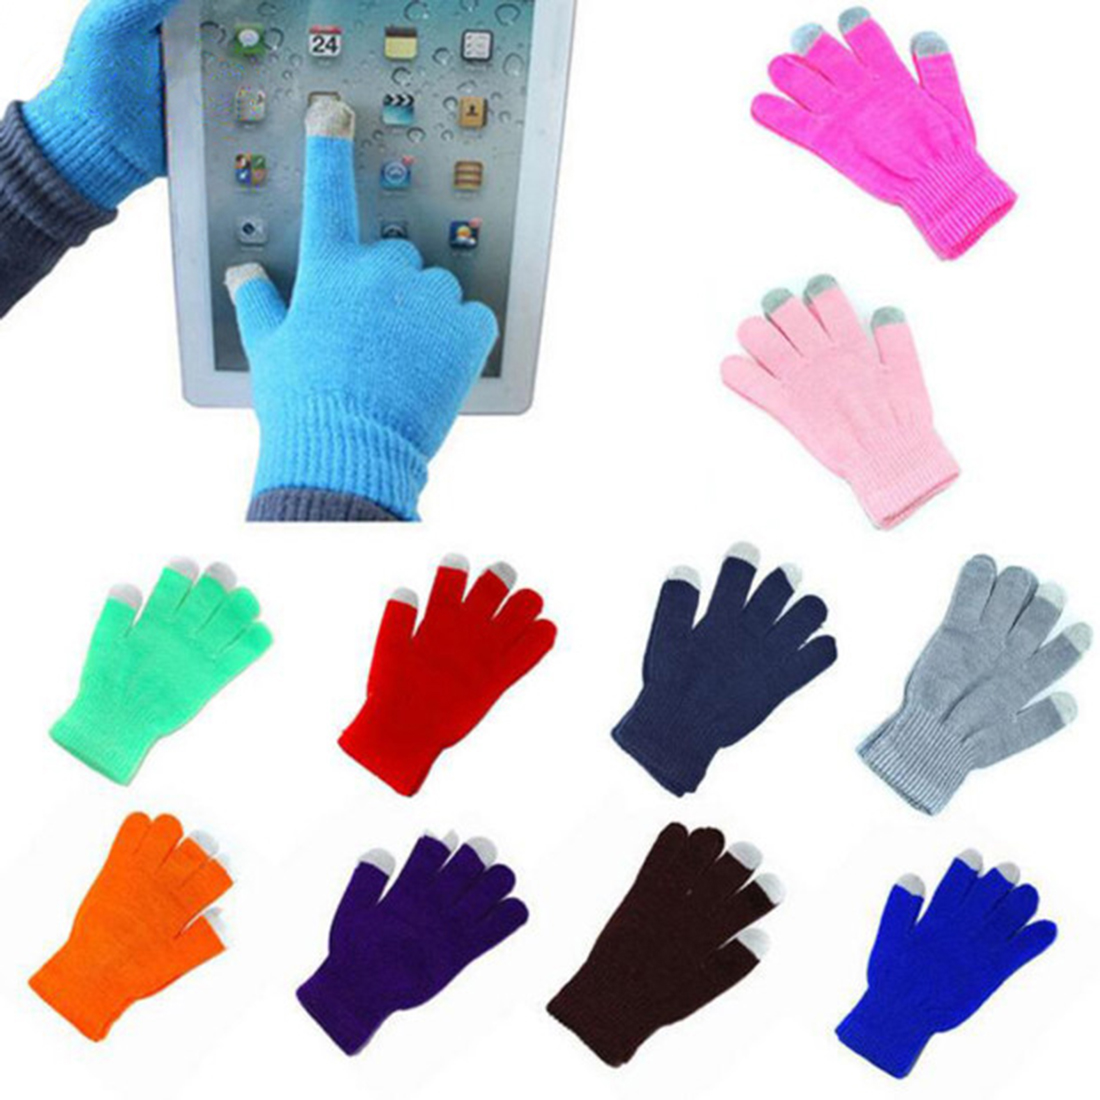 Winter Touchscreen Handschuhe Texting Kappe Smart Telefon Frauen Männer Warme Stretch Stricken Handschuhe Voll Finger Weiblichen Häkeln Weiche Verdicken image